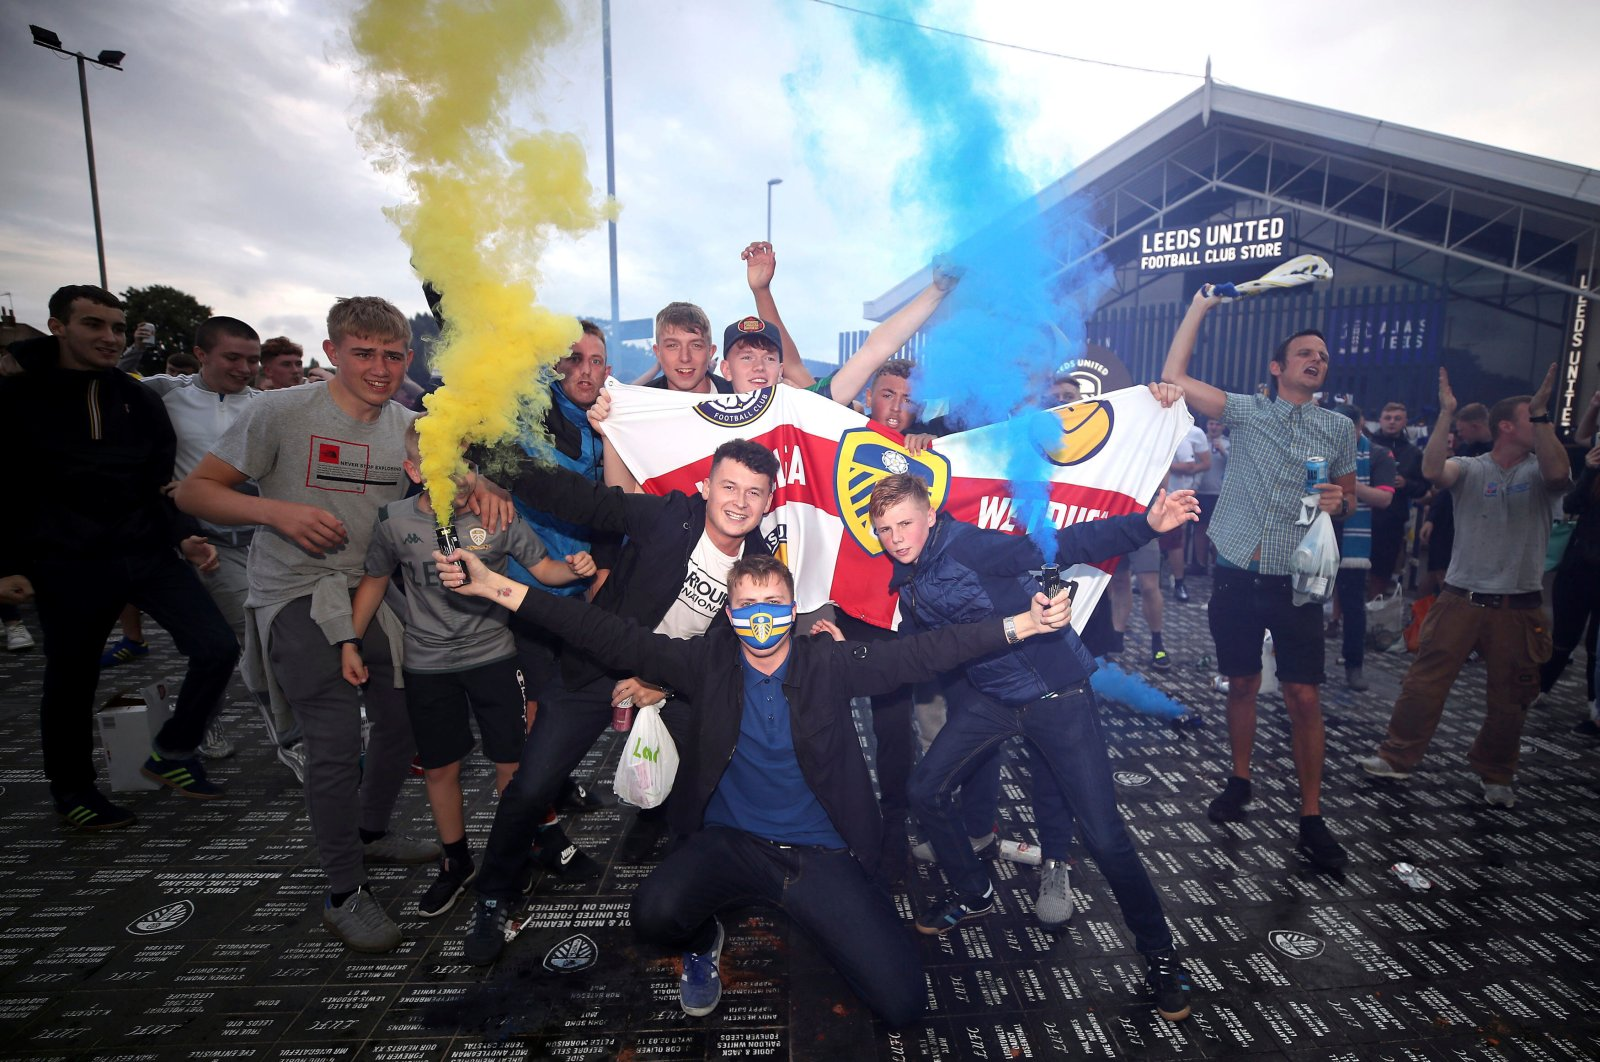 Leeds United fans celebrate outside Elland Road, Friday, July 17, 2020, in Leeds, England, after Huddersfield Town beat West Bromwich Albion to seal their promotion to the Premier League. (PA via AP)